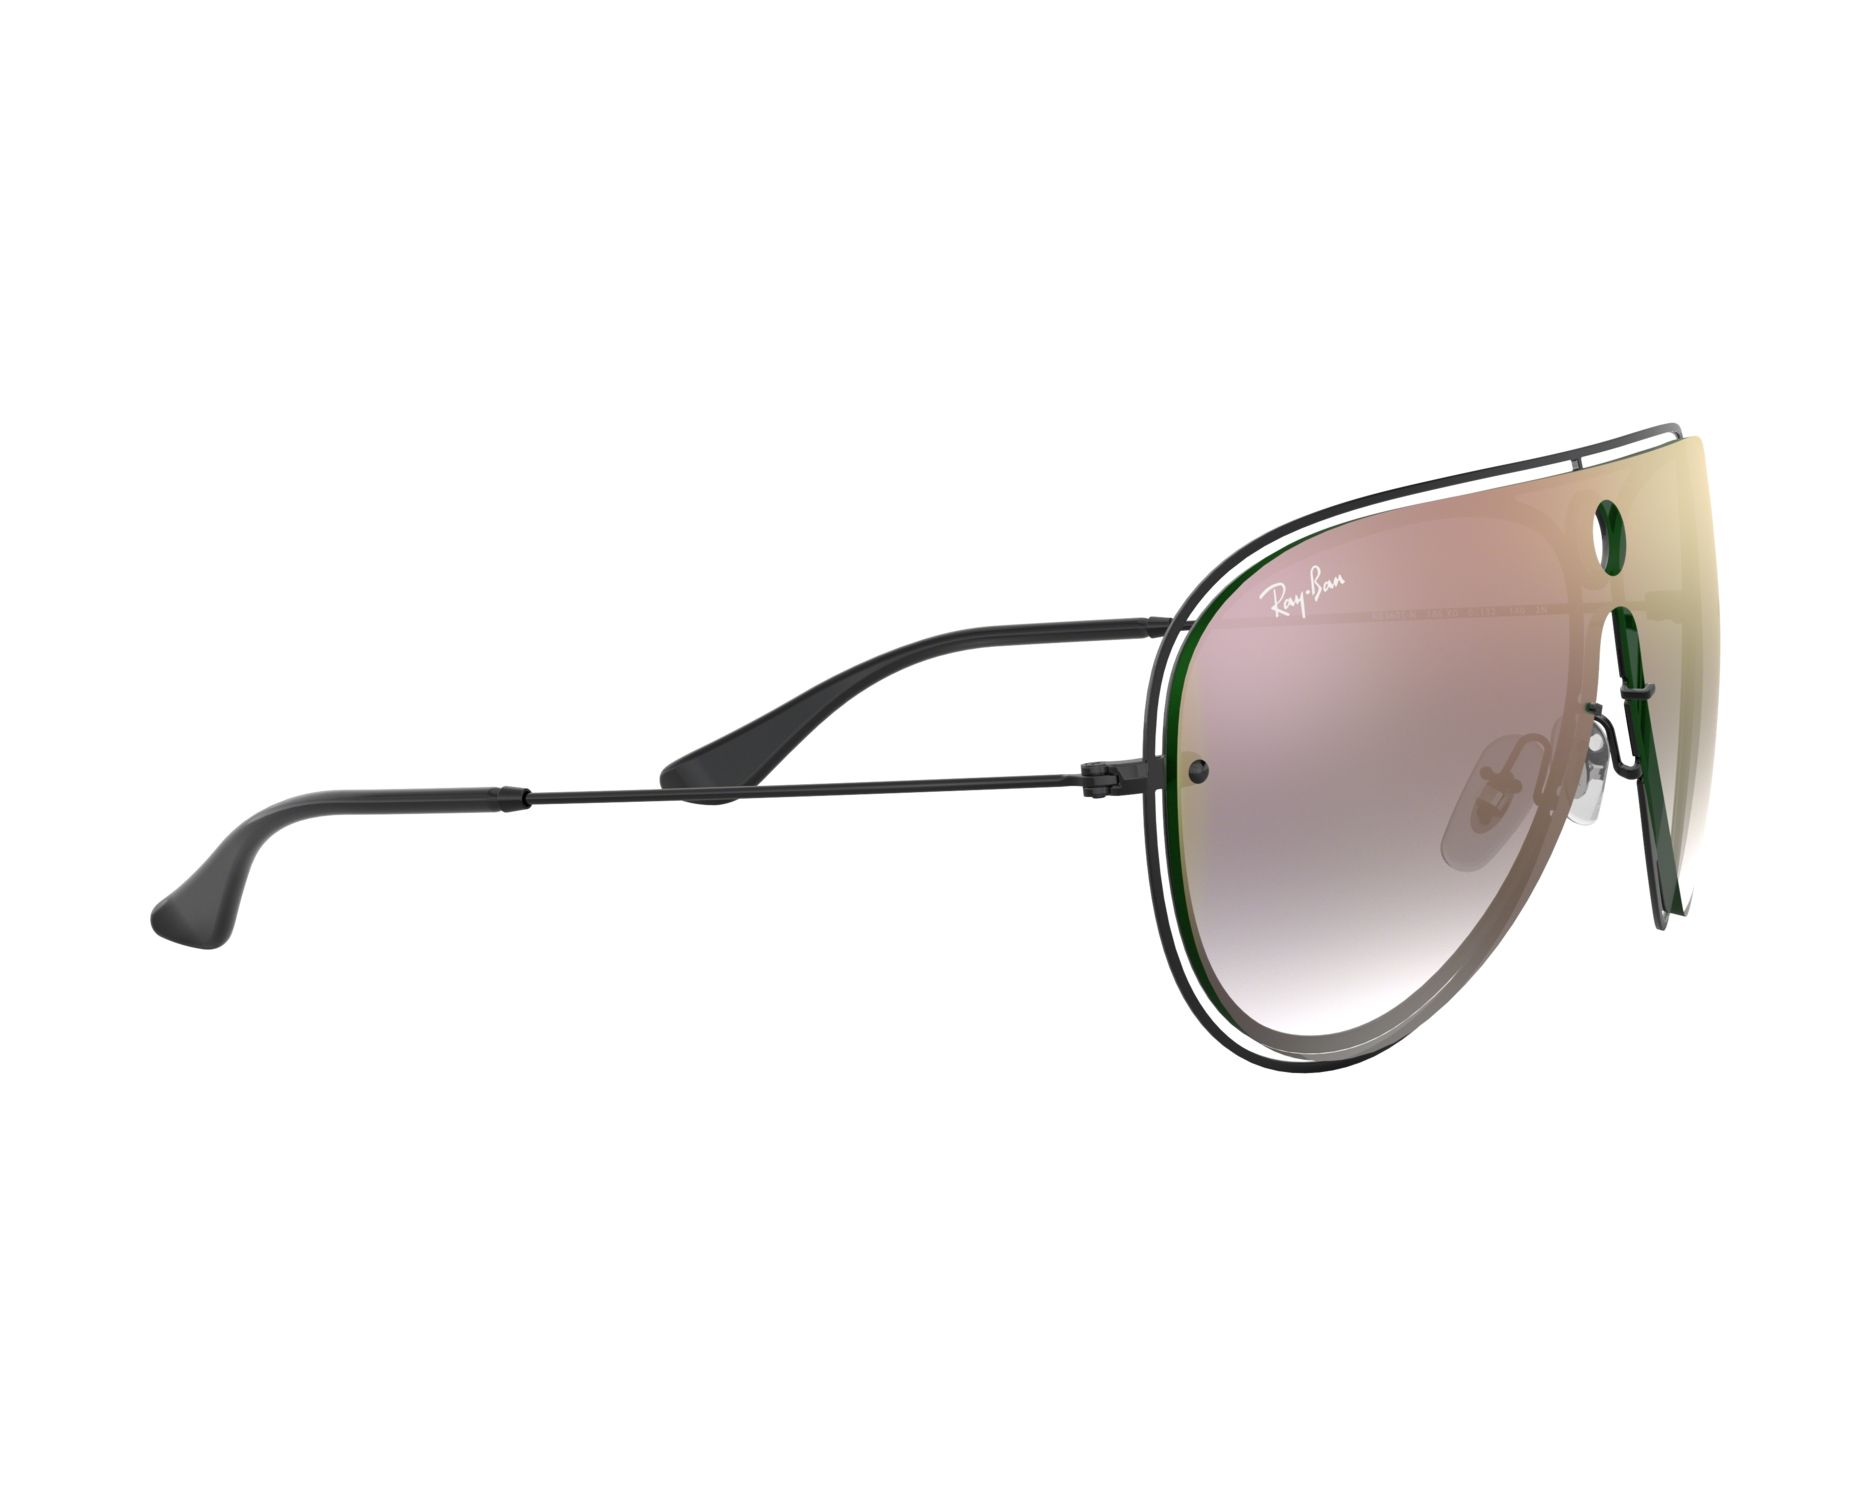 68f24a1bf9 Ray Ban Rb 3605 « One More Soul